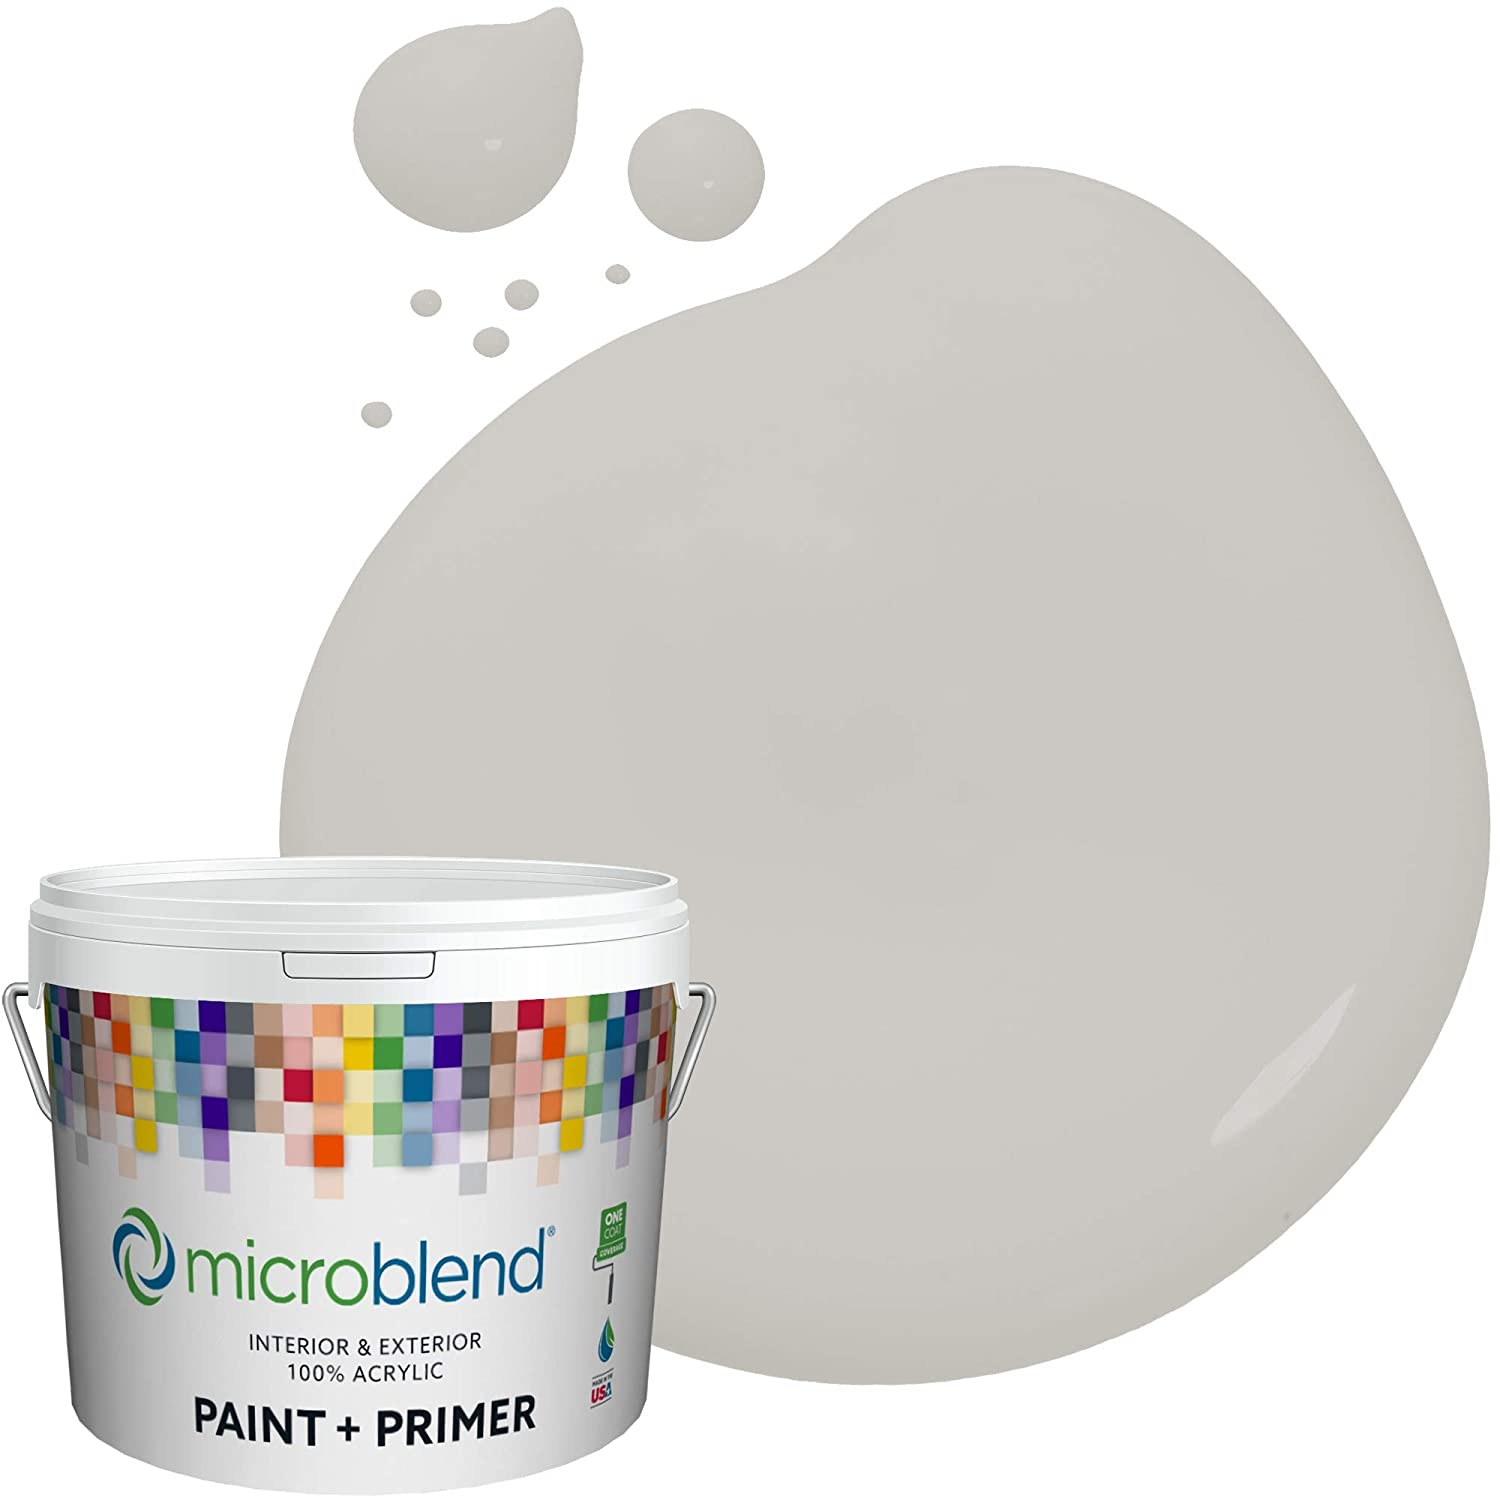 Microblend Exterior Paint and Primer - Gray/Grey Rain, Semi-Gloss Sheen, 2-Gallon, Premium Quality, One Coat Hide, Low VOC, Washable, Microblend Sierras Collection